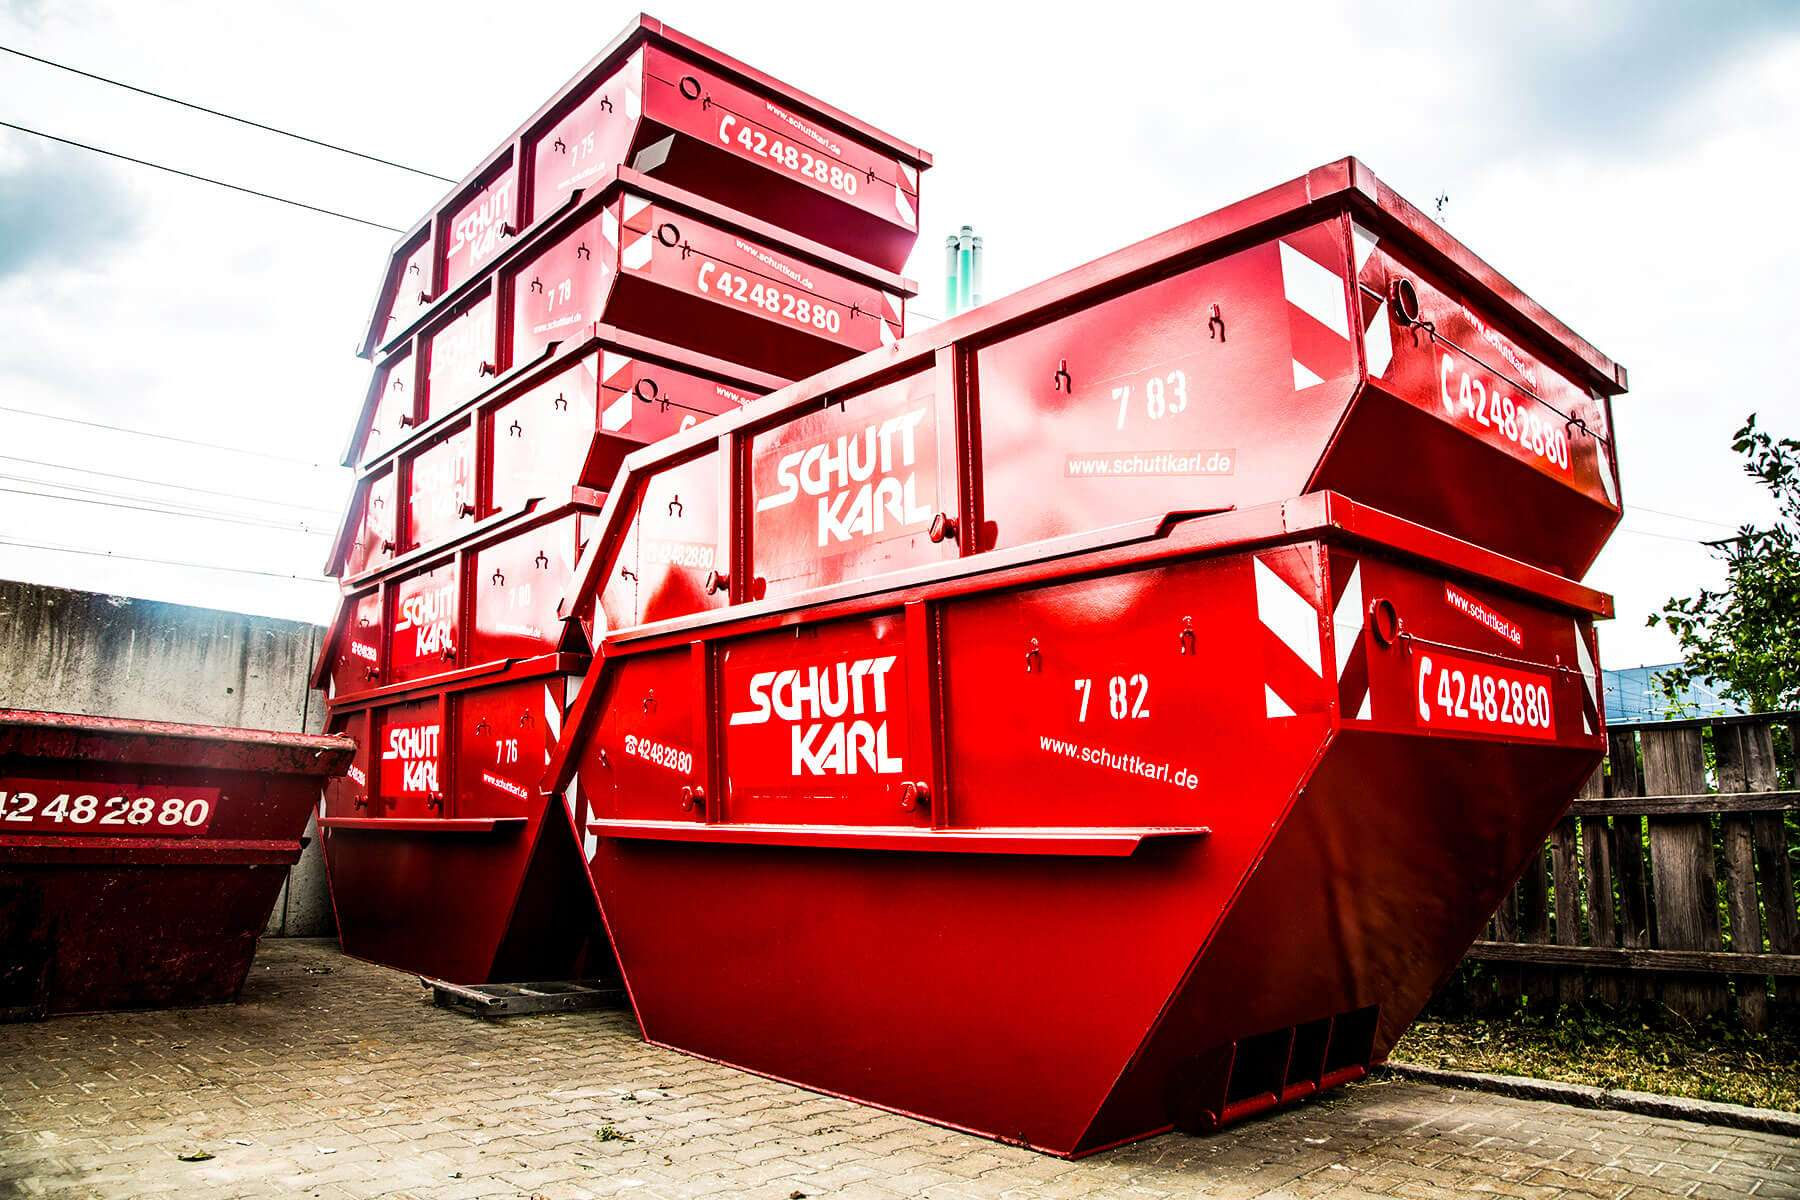 Schutt Karl | Header Container